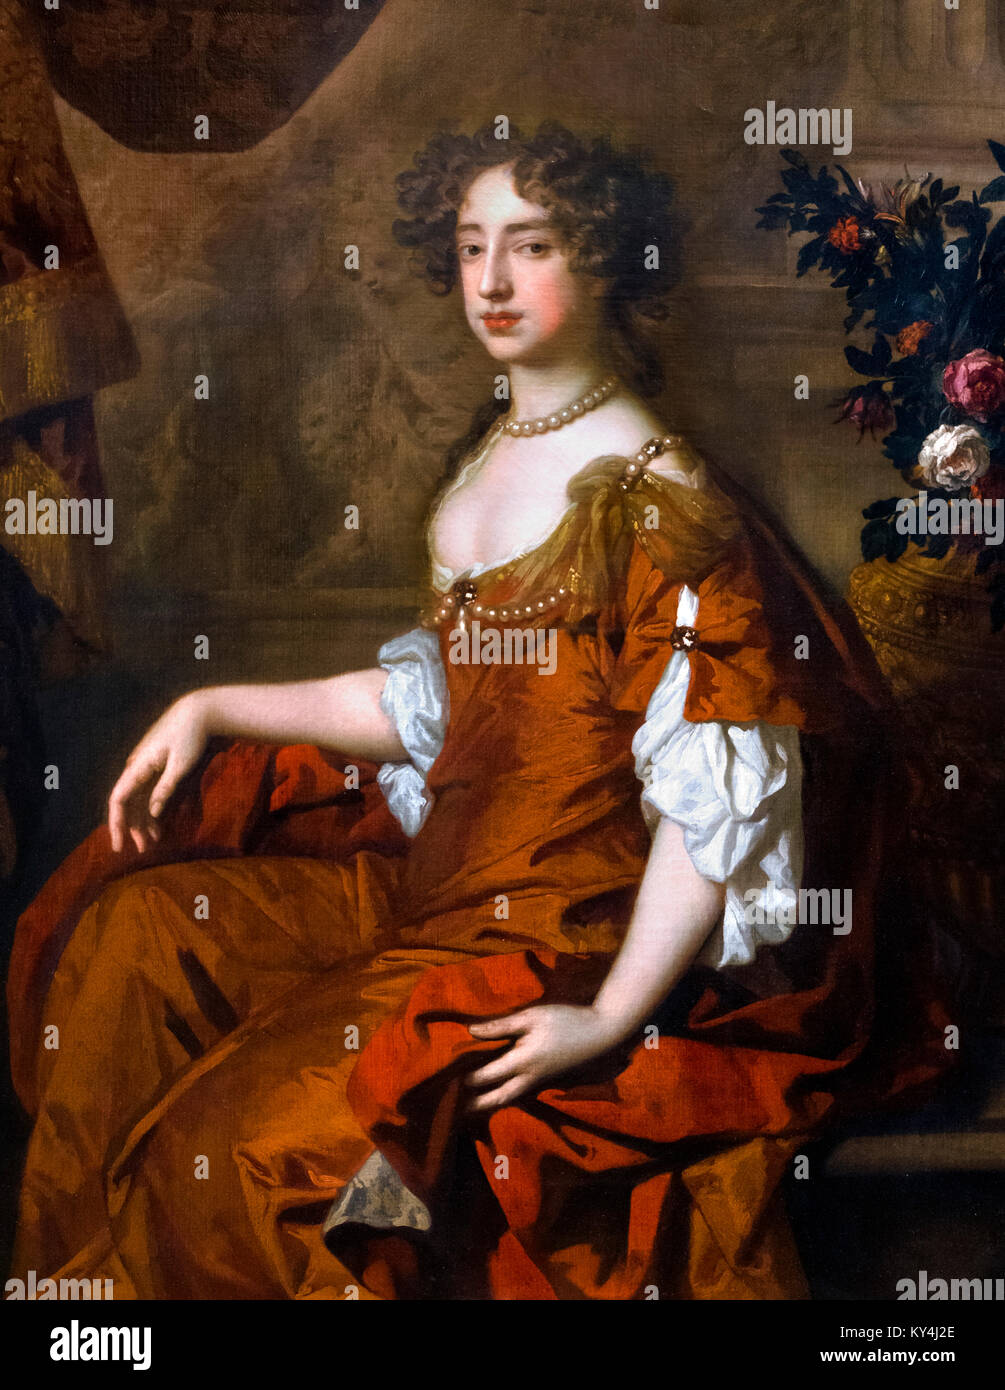 Mary II (1662-1694). Queen Mary II of England by Sir Peter Lely, oil on canvas, 1677 - Stock Image